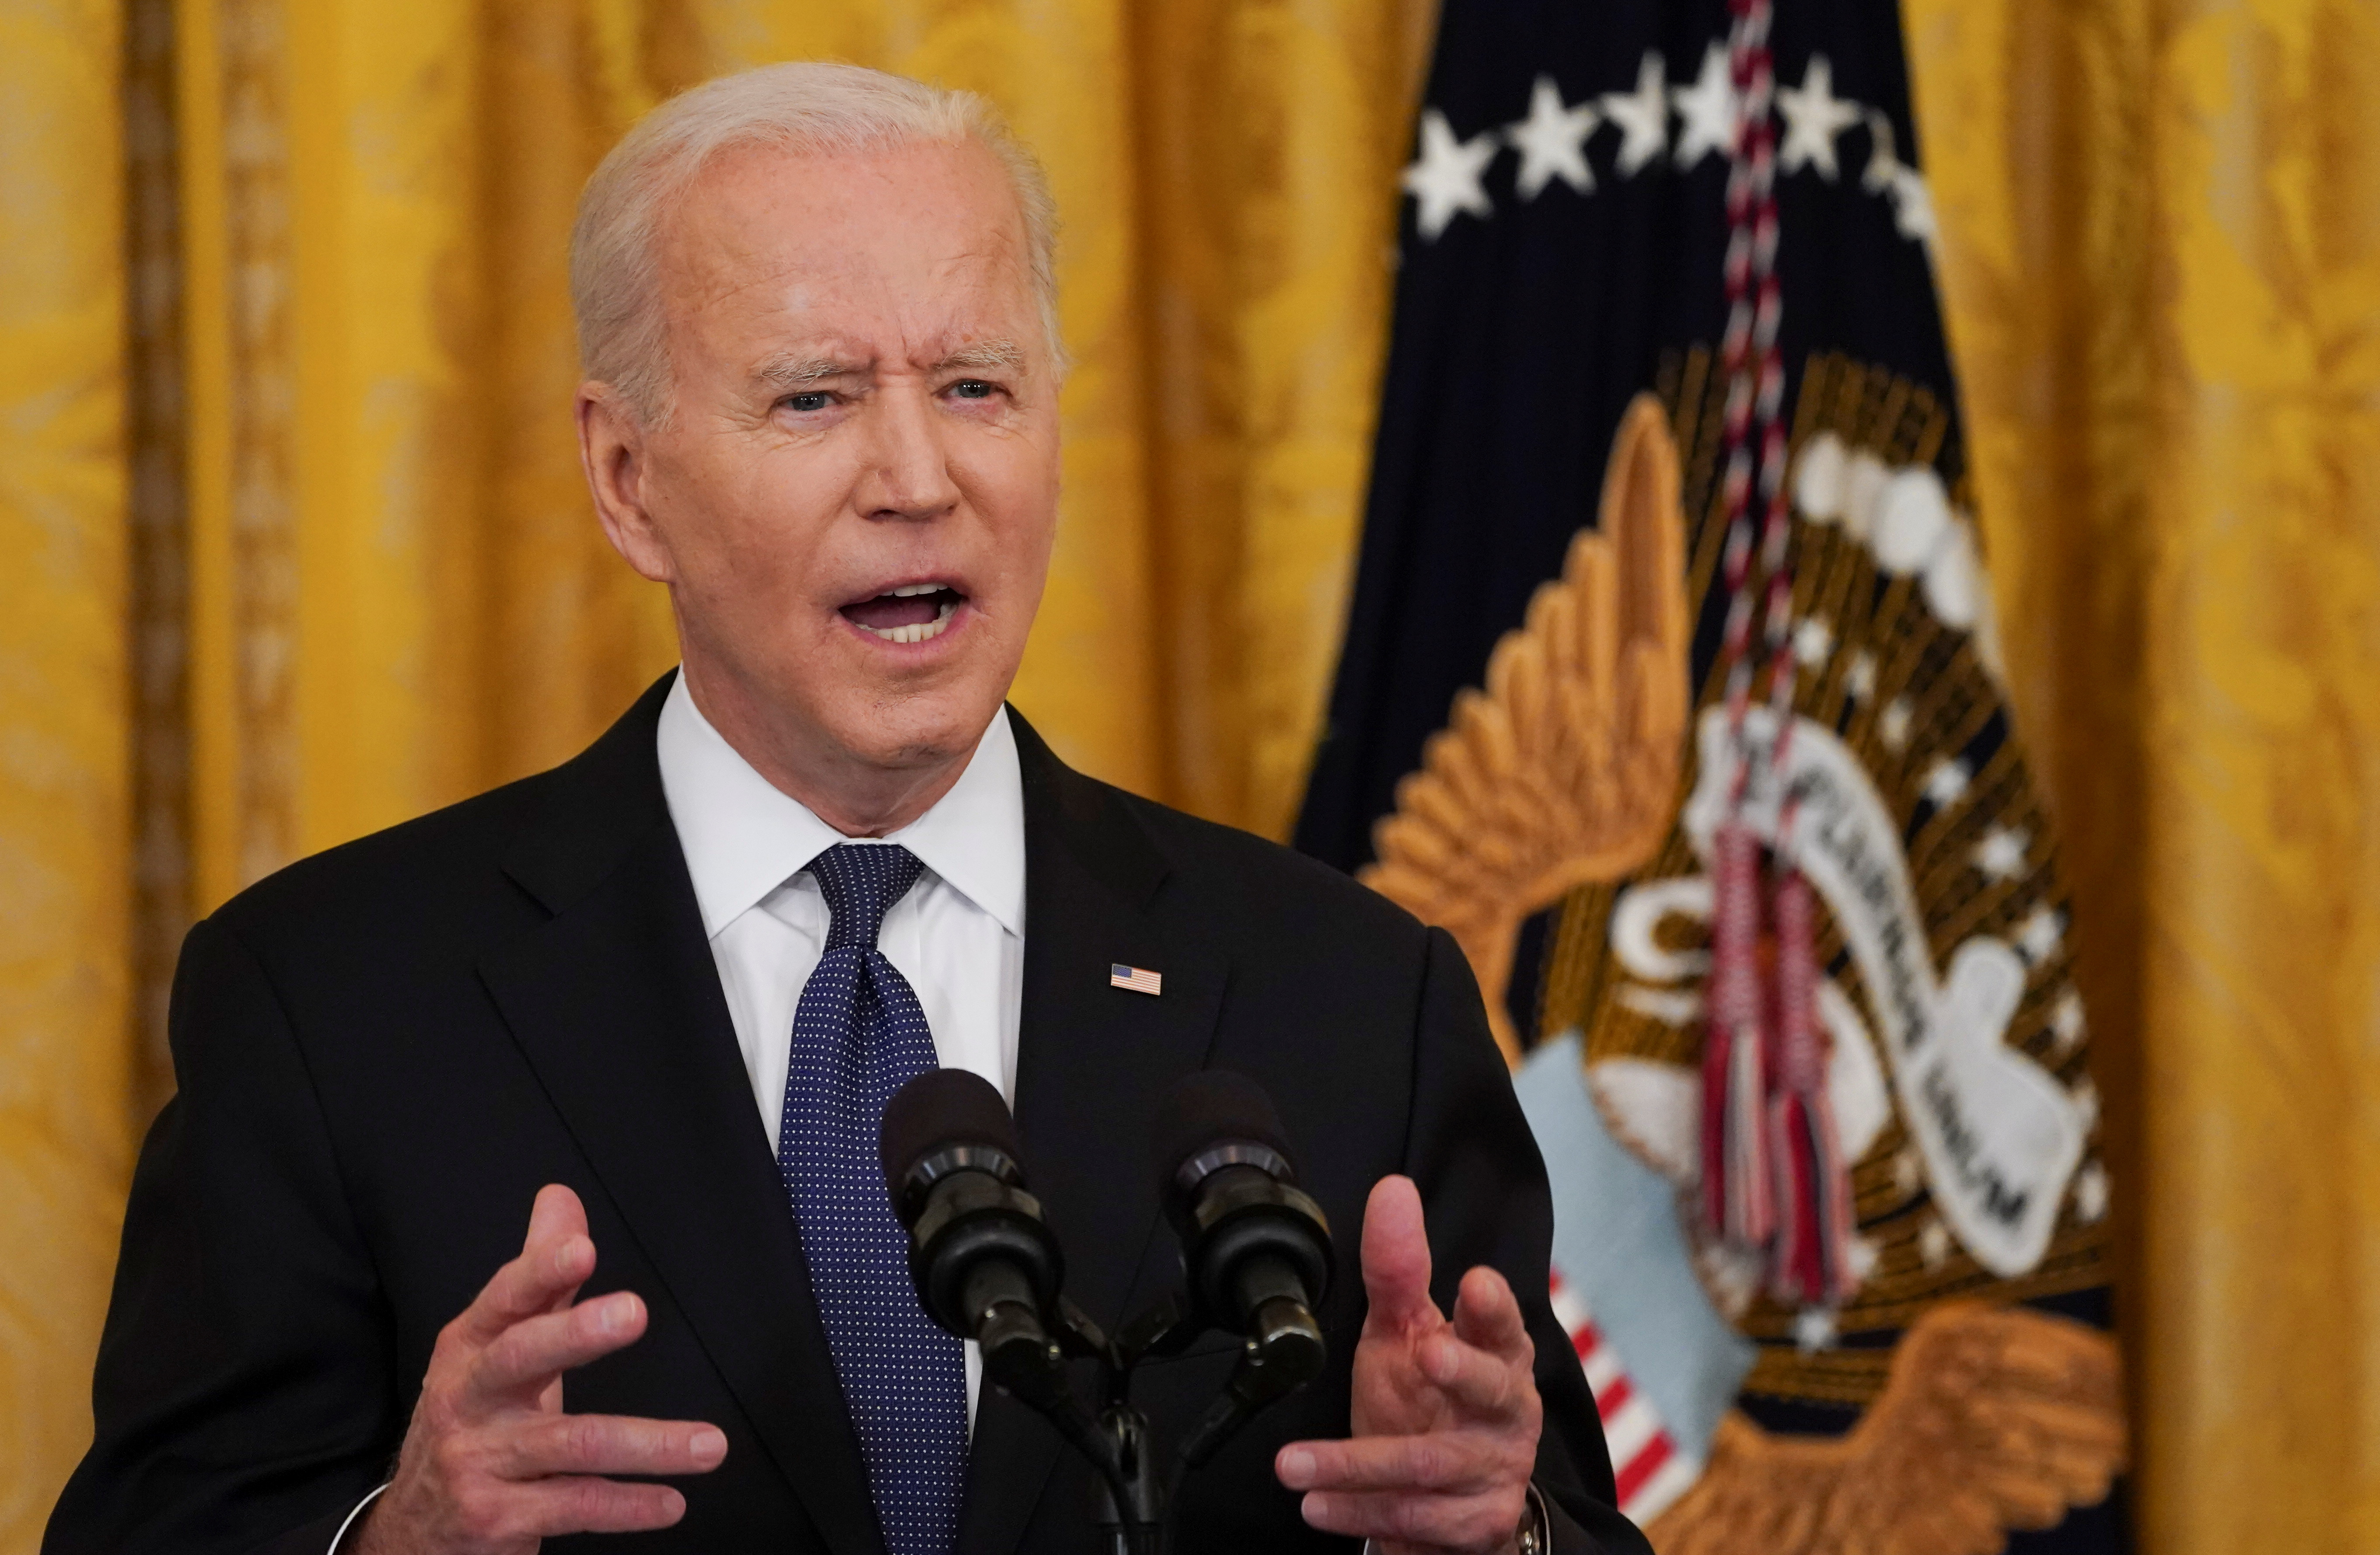 U.S. President Joe Biden speaks before signing the COVID-19 Hate Crimes Act into law, in the East Room at the White House in Washington, U.S., May 20, 2021. REUTERS/Kevin Lamarque